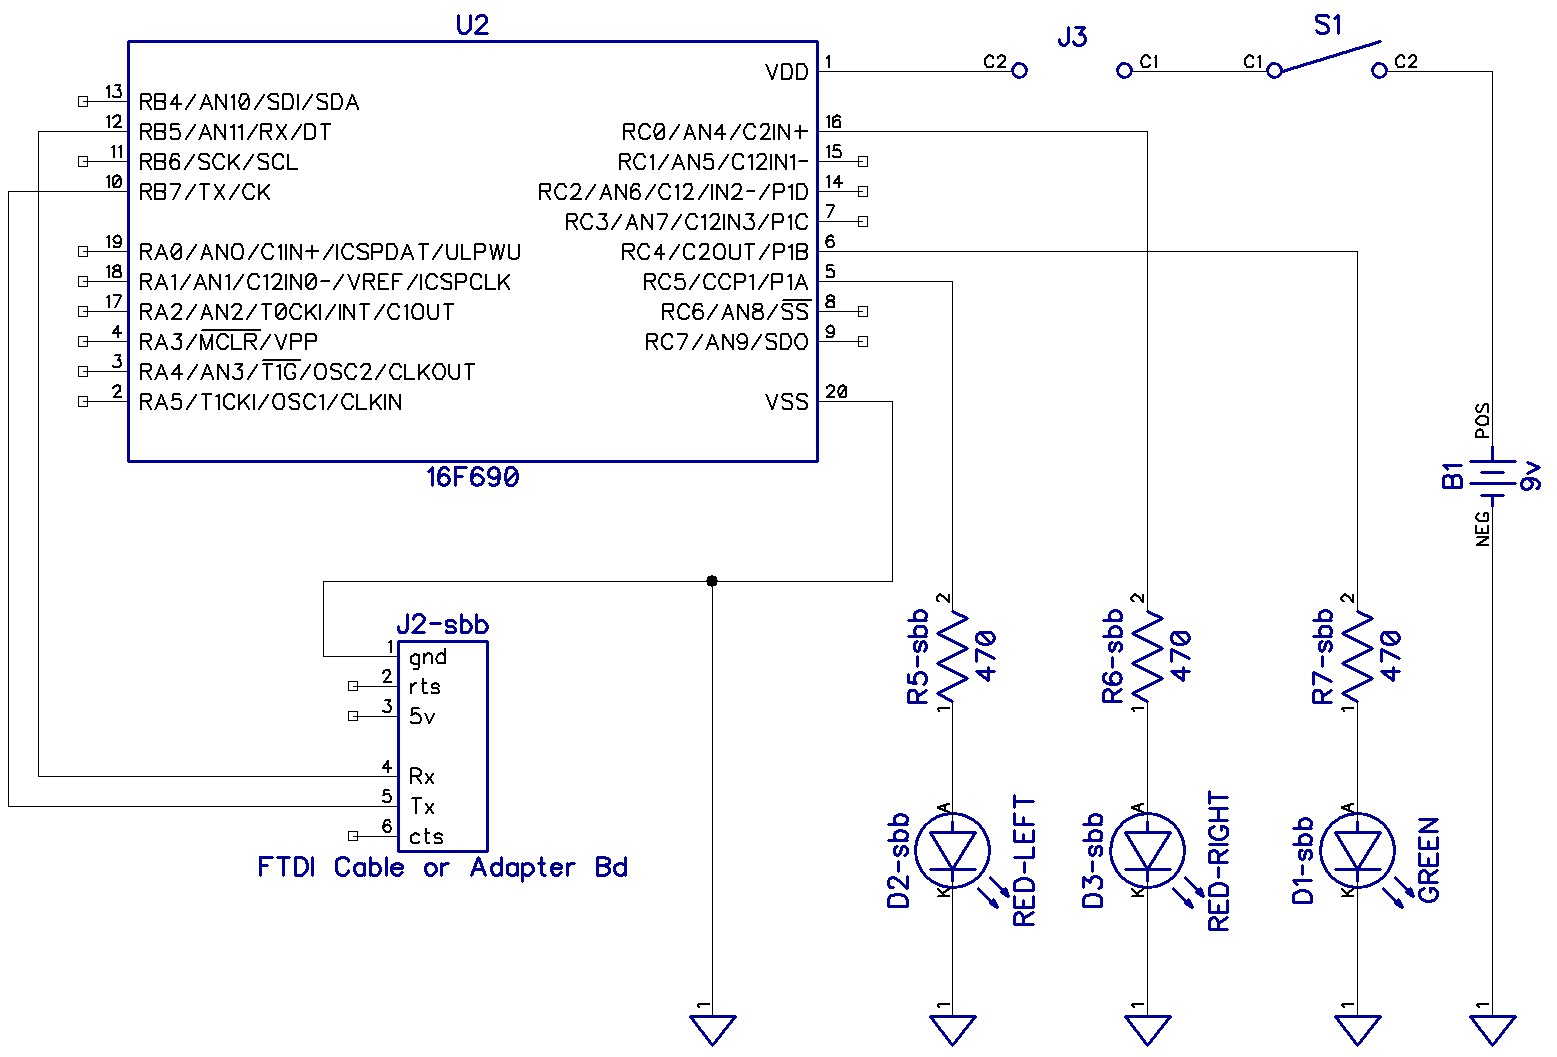 Sportslivin Blog Car Alarm Wiring Diagrams Carbine Alarms Tm Pic16f690 Serial Communication C Code Formatter